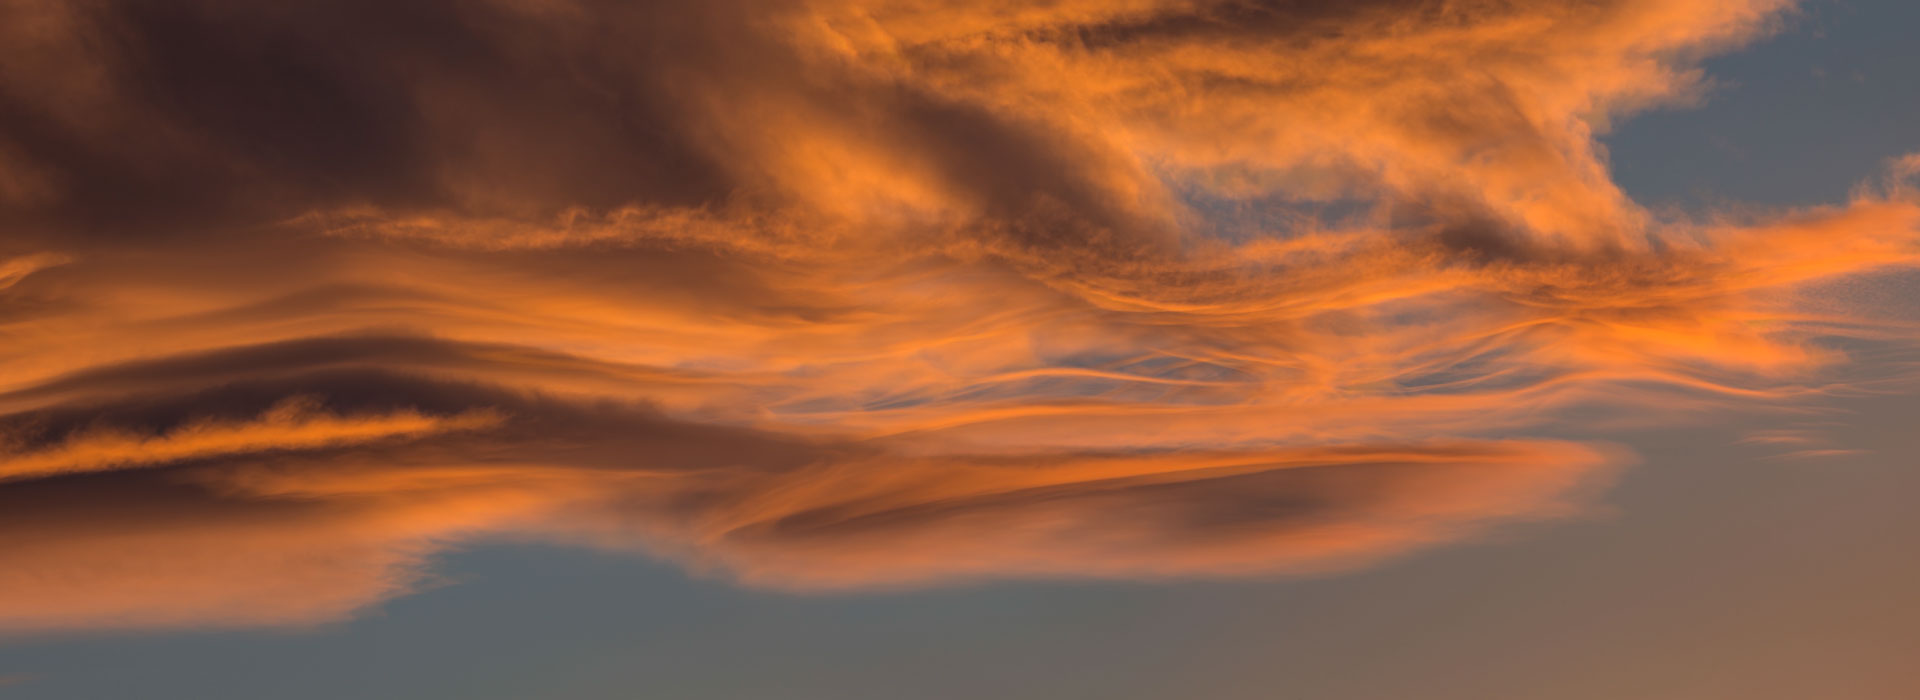 Nevada sunset clouds timelapse video